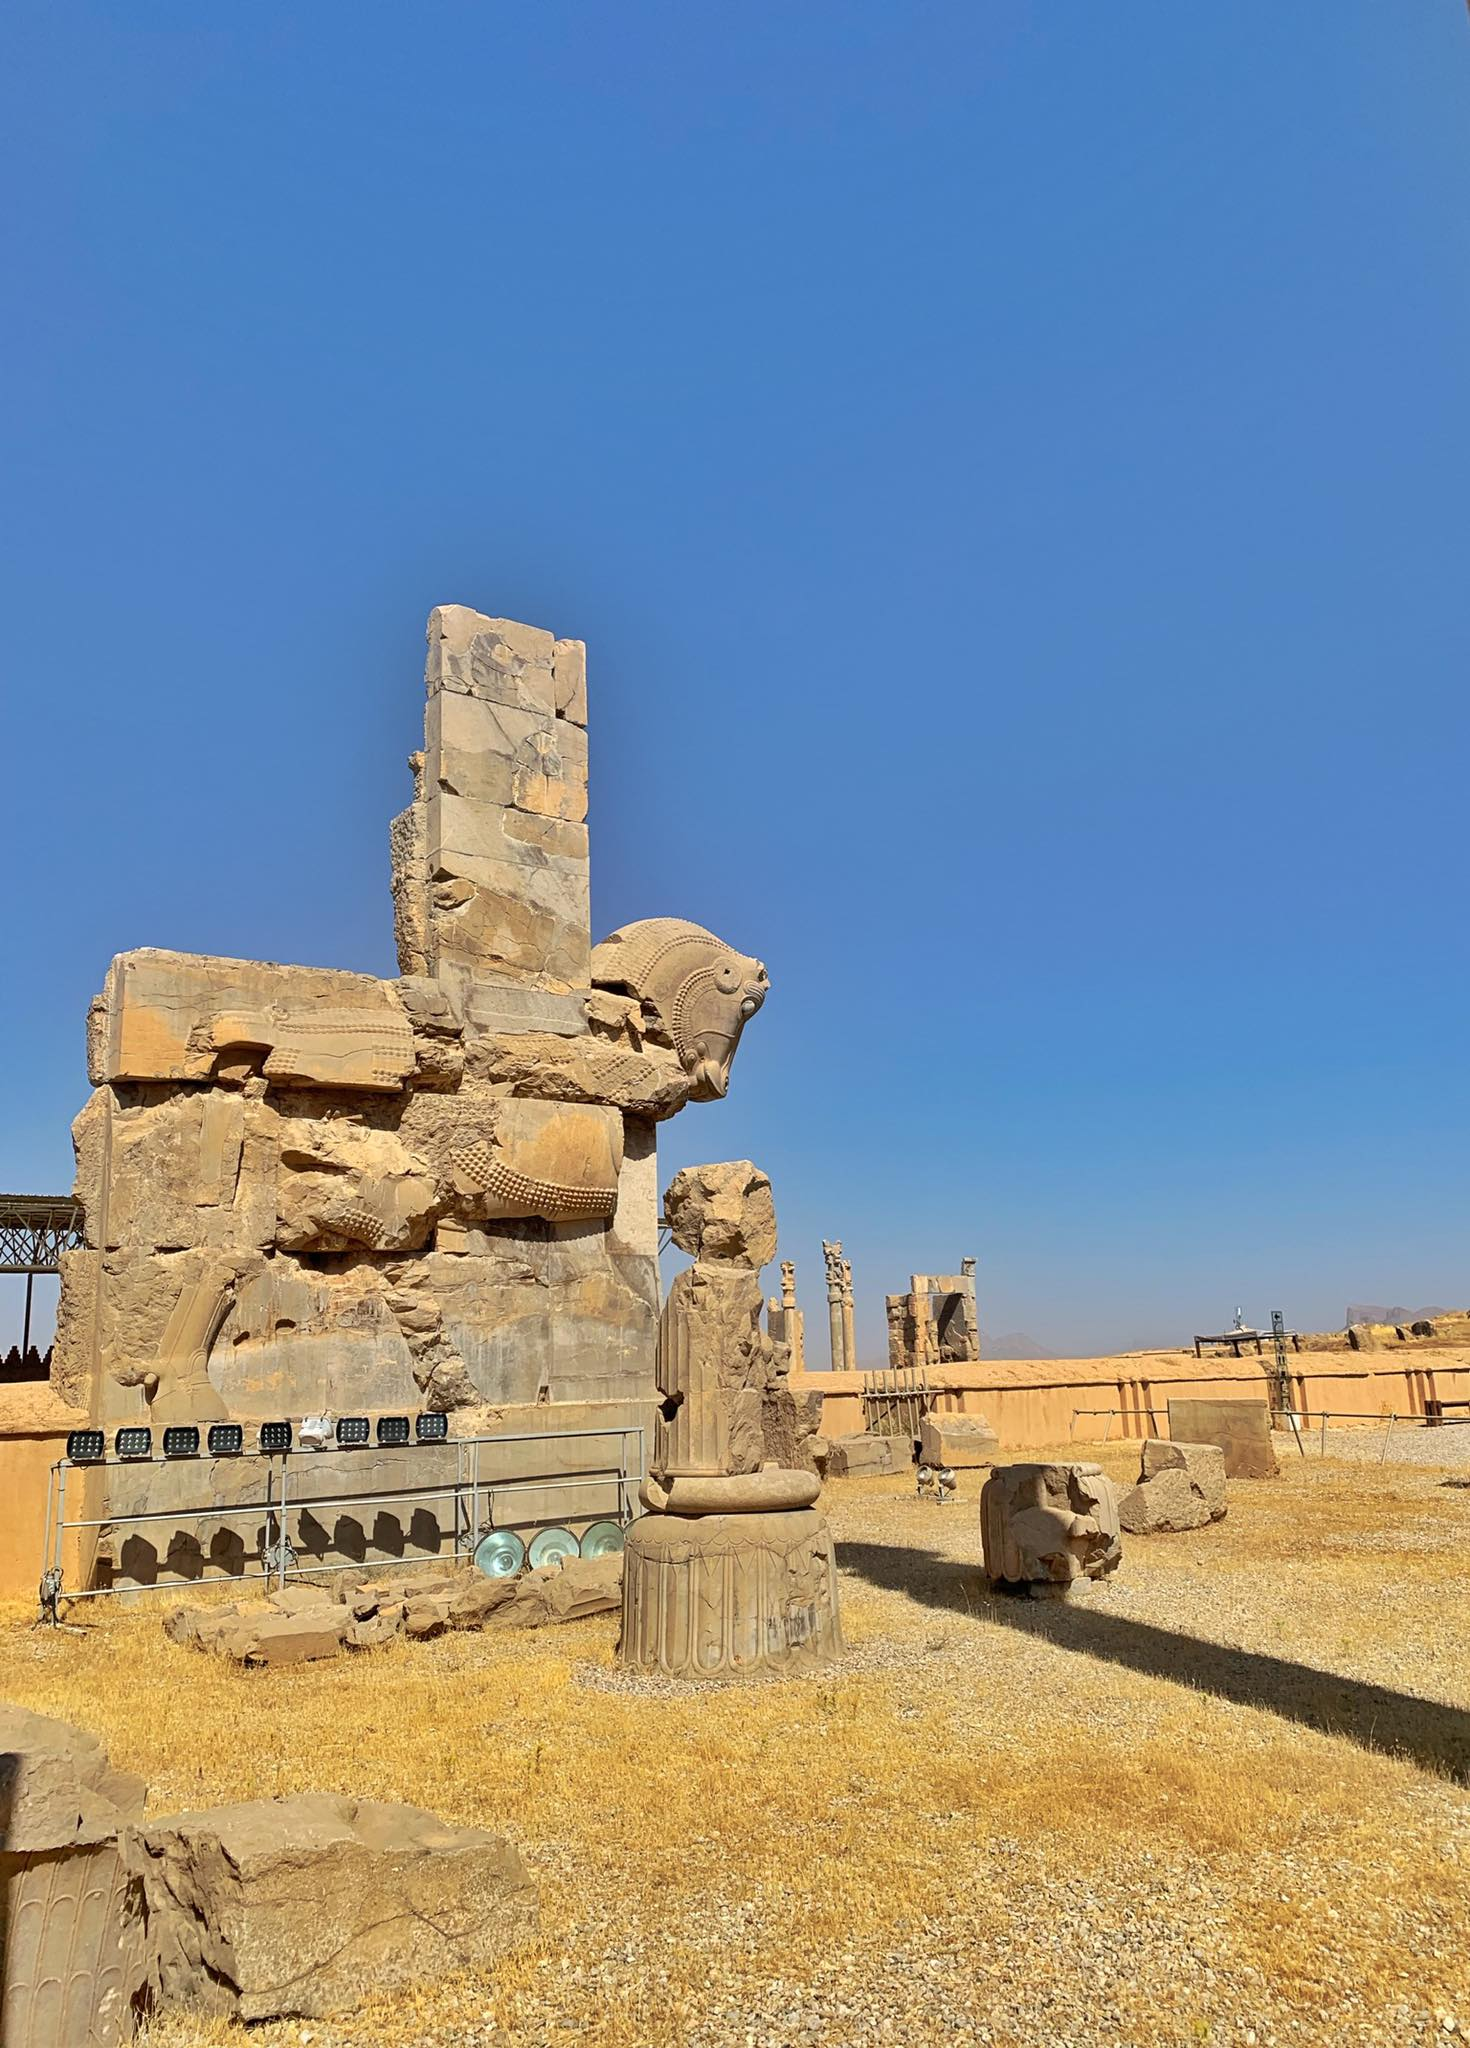 Kach Solo Travels in 2019 UNESCO heritages sites of Persepolis and Pasagardae28.jpg